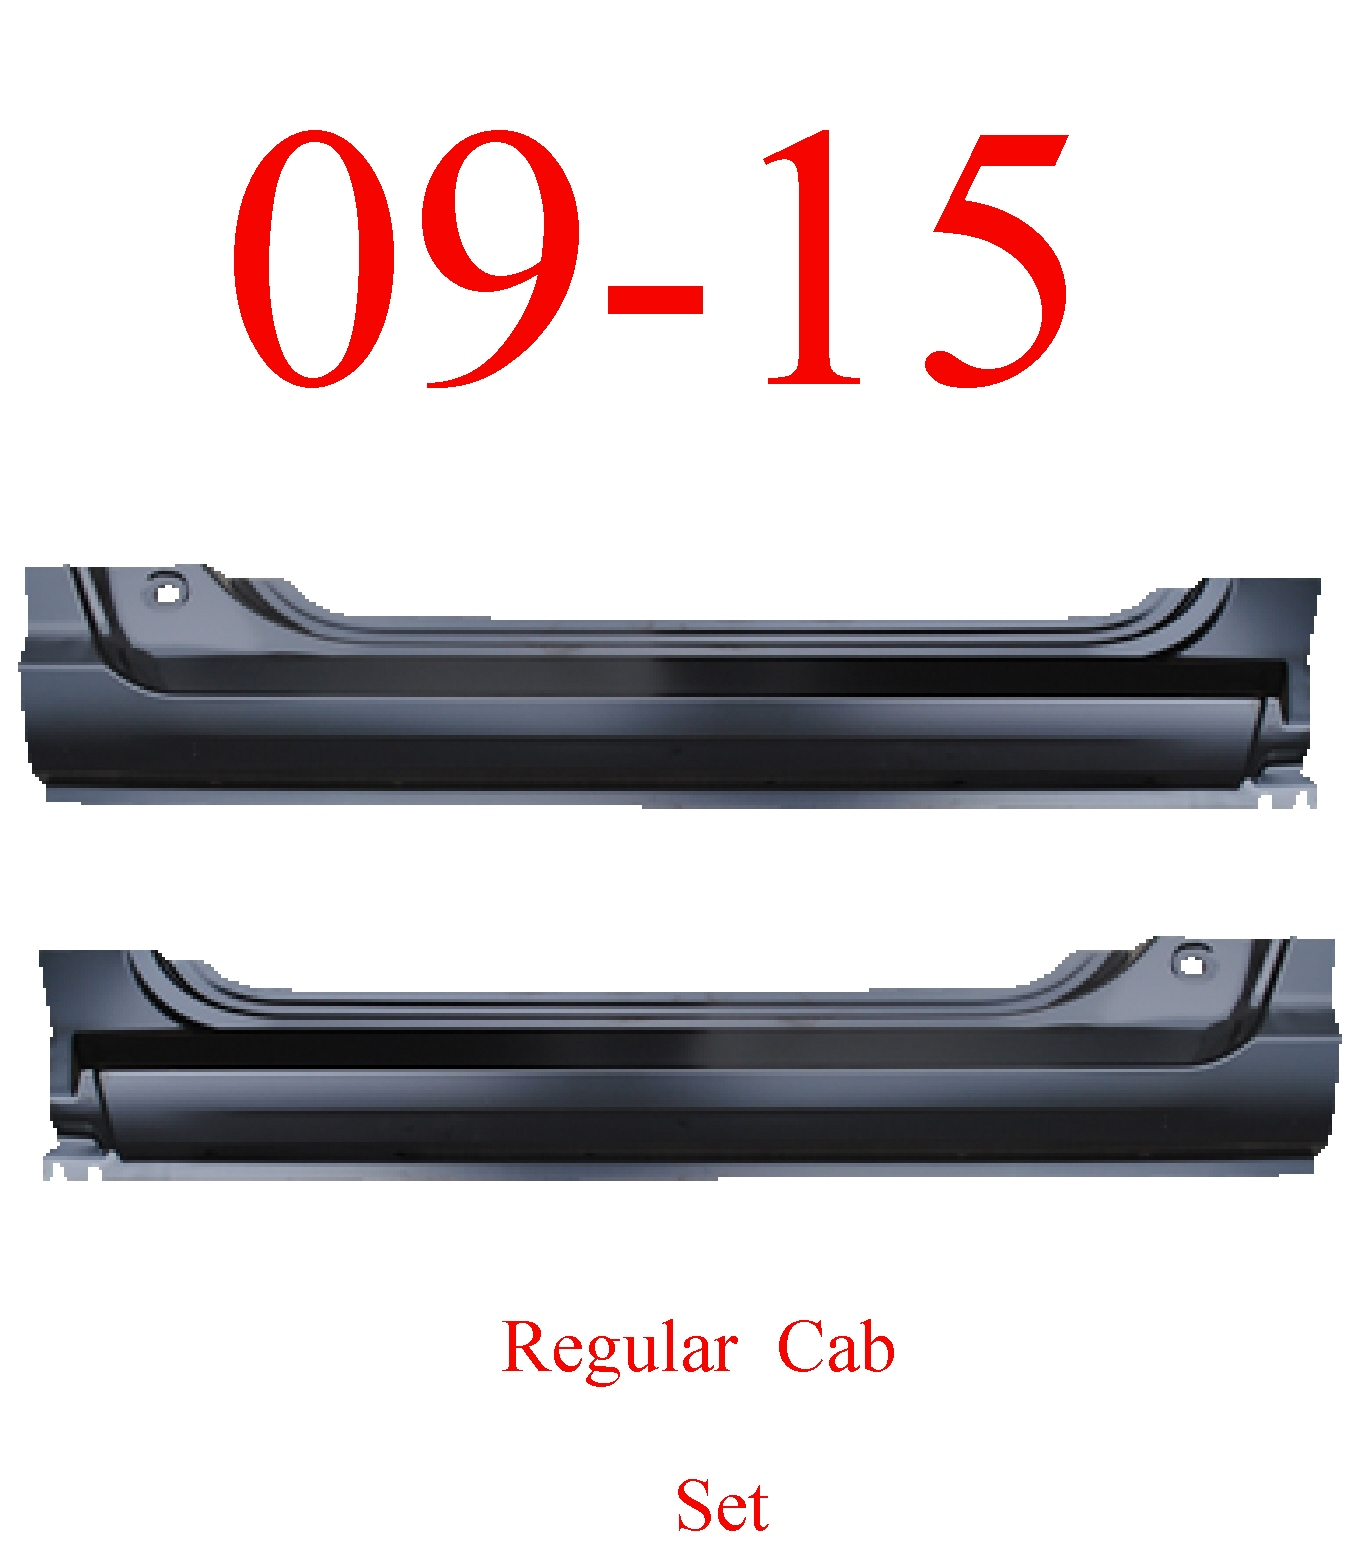 09-15 Ram Regular Cab Extended Rocker Set